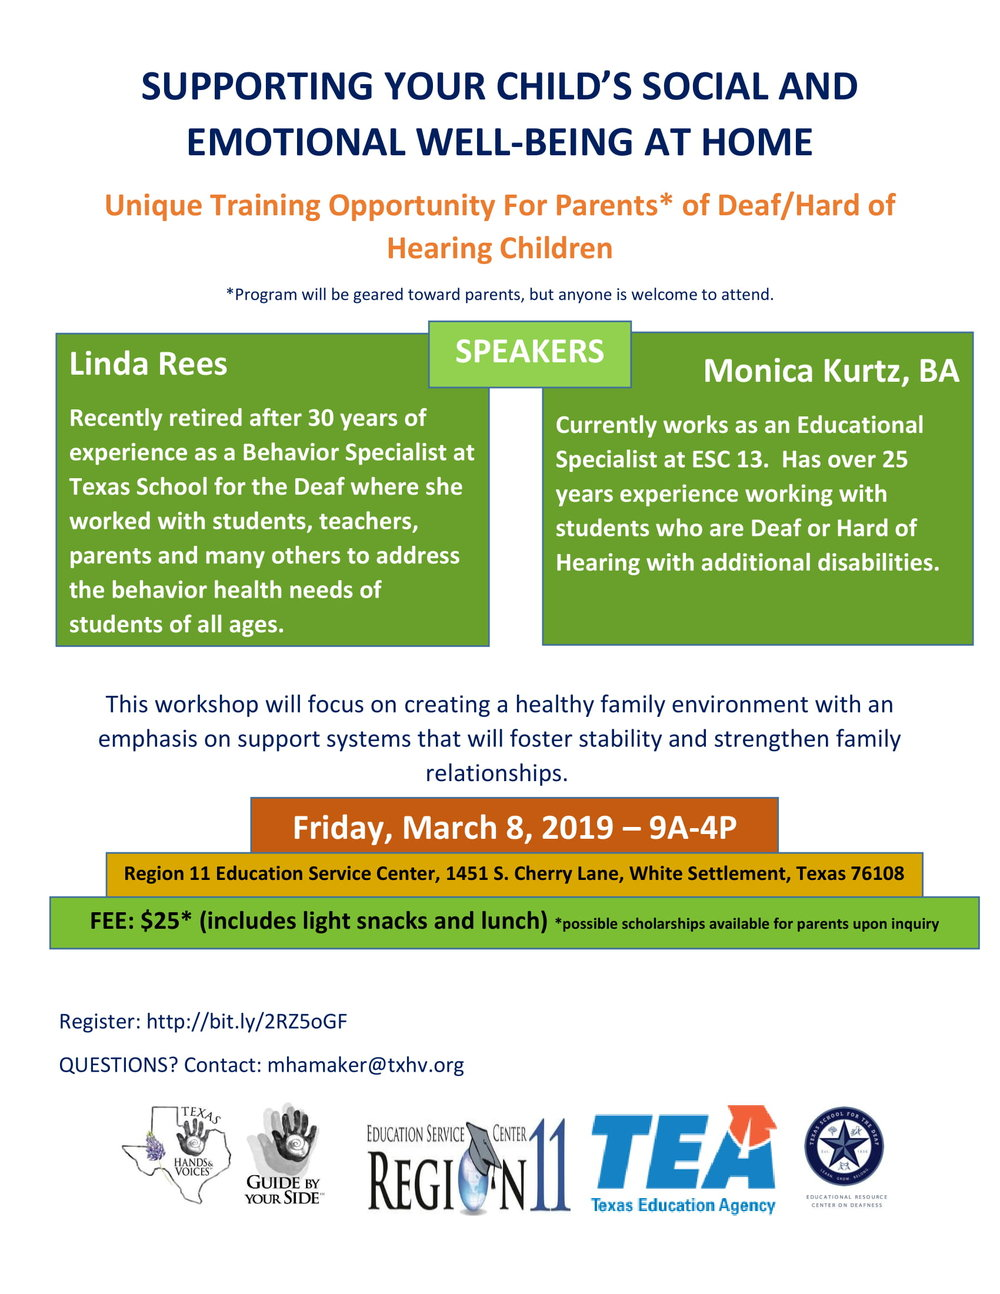 3.8.19 Parent Social and Emotional Well Being Training Flyer-ESC 11-1.jpg